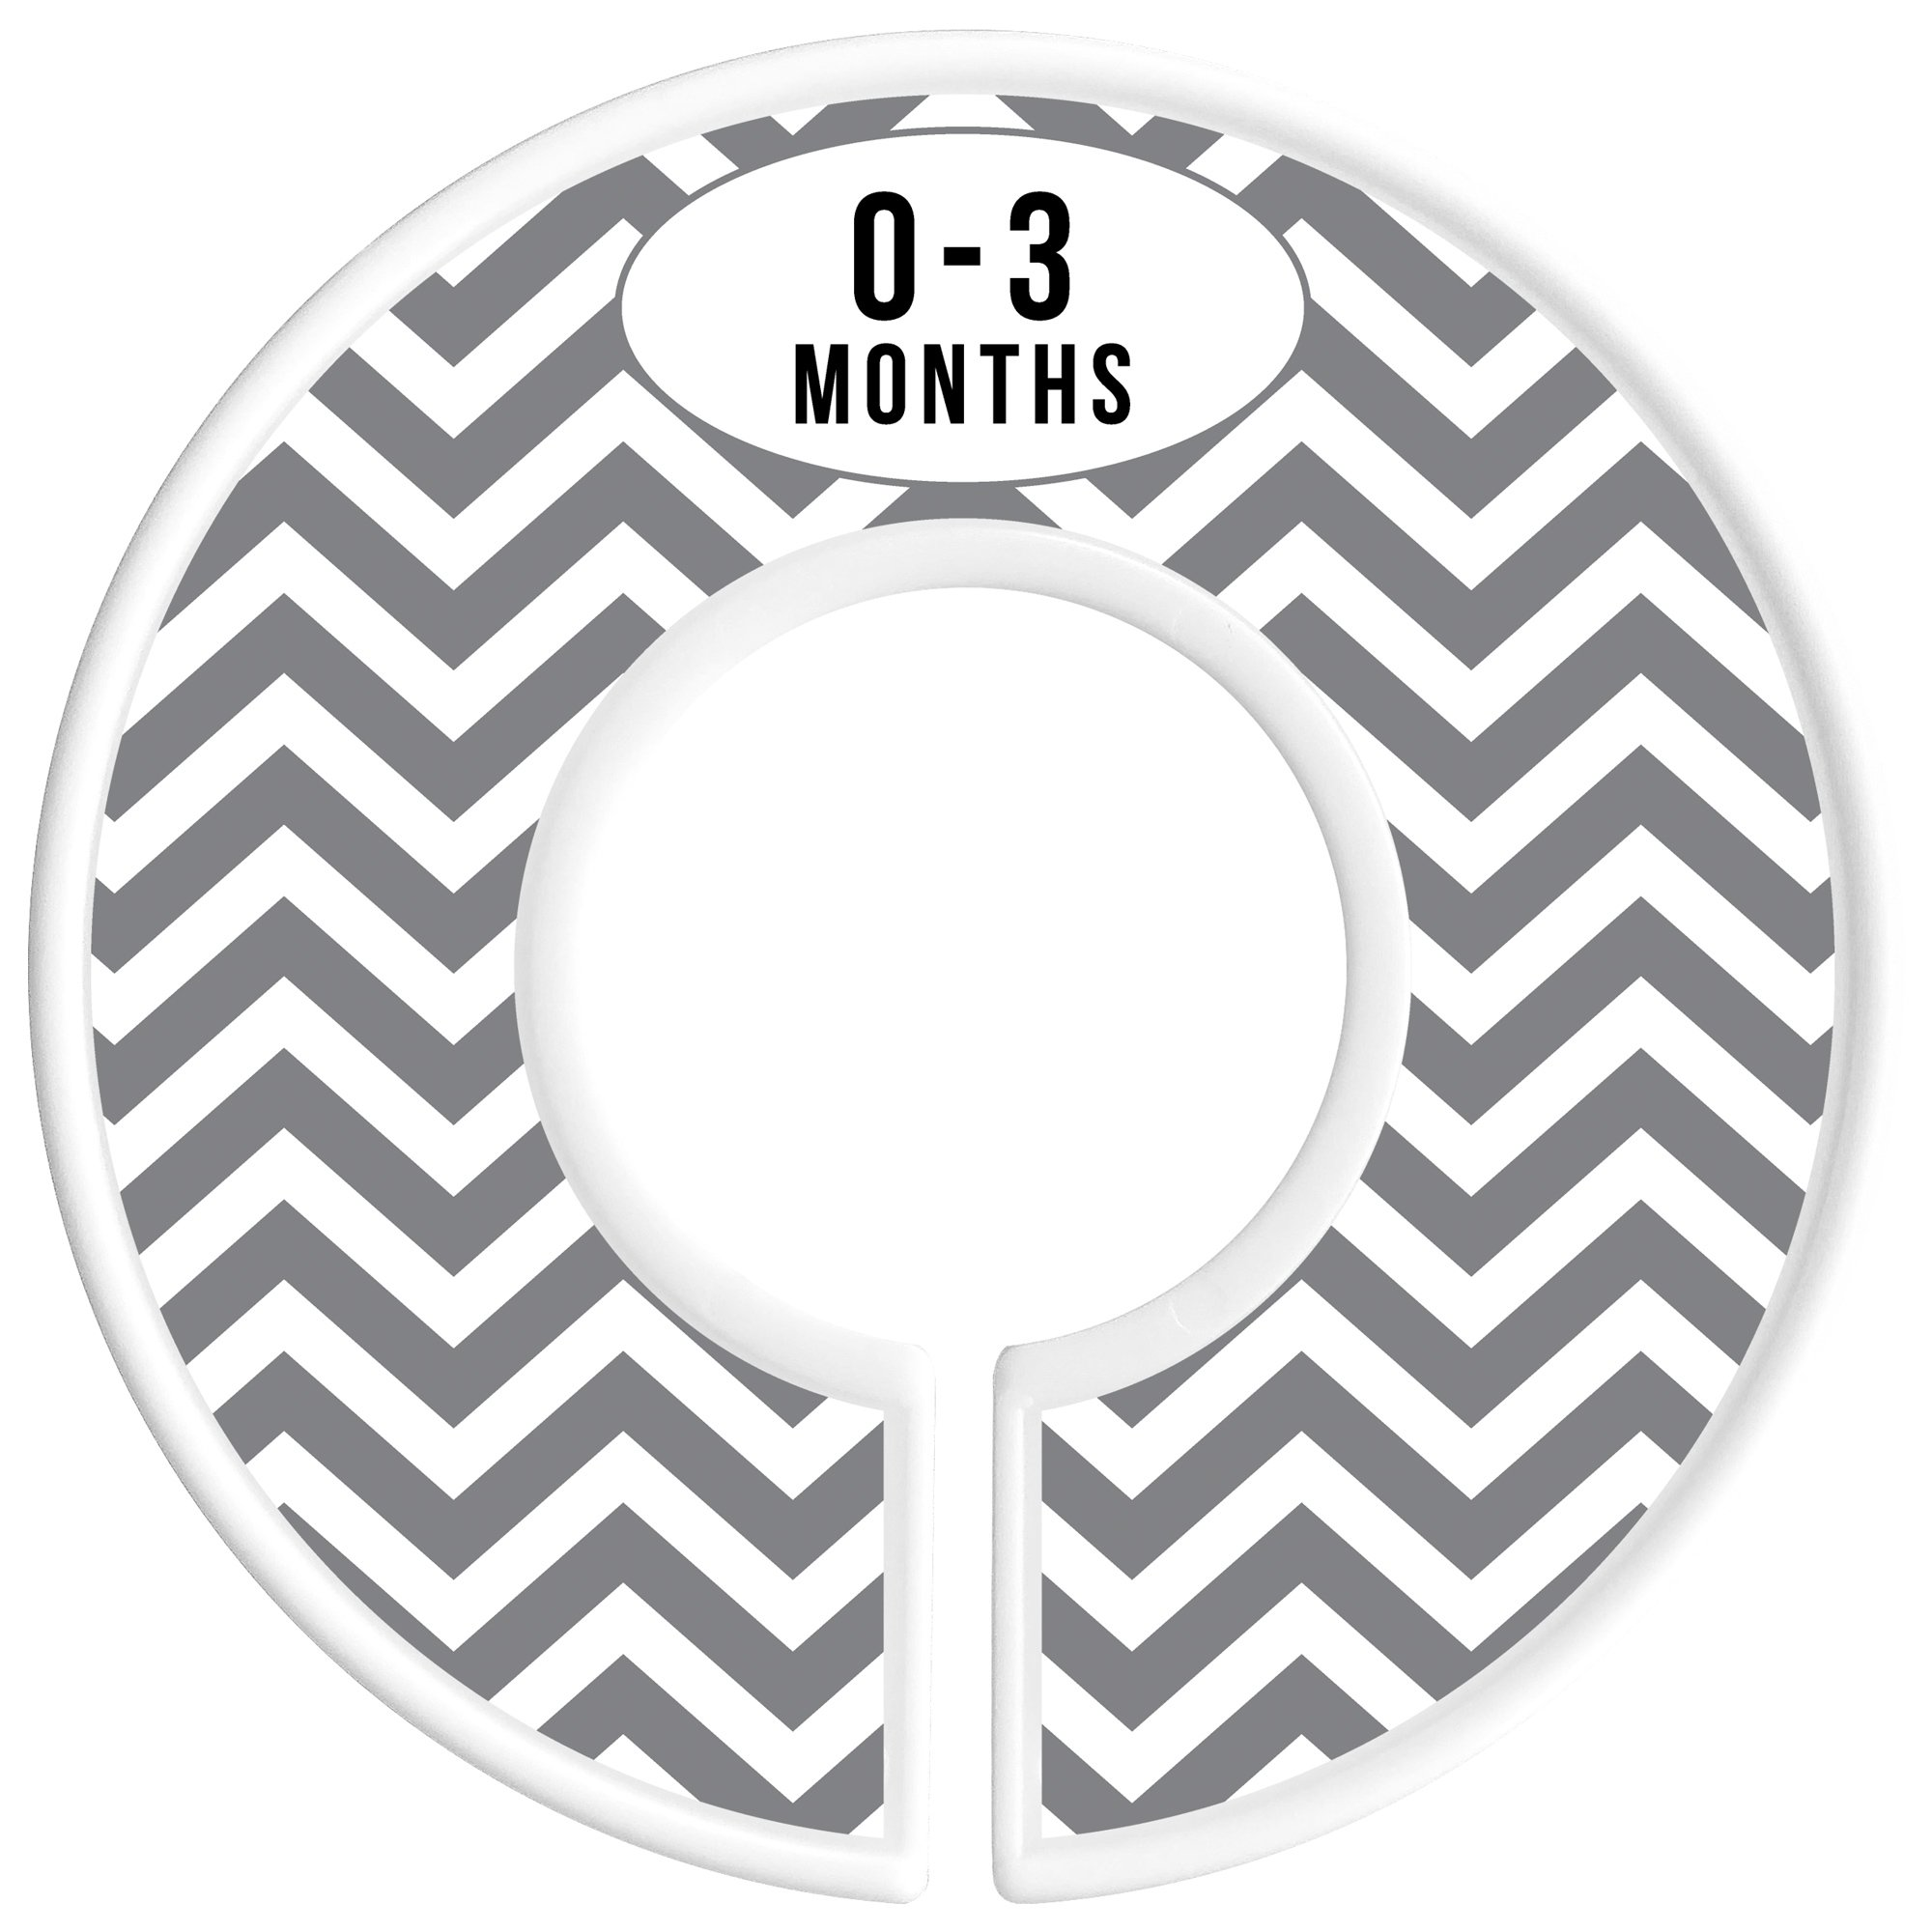 Delicush Baby Closet Dividers, Stripe, Chevron, Set of 6 Size Organizers, Nursery Closet Organizers, Baby Size Dividers, Glossy Finish, Boy, Girl (Grey) by DELICUSH (Image #3)